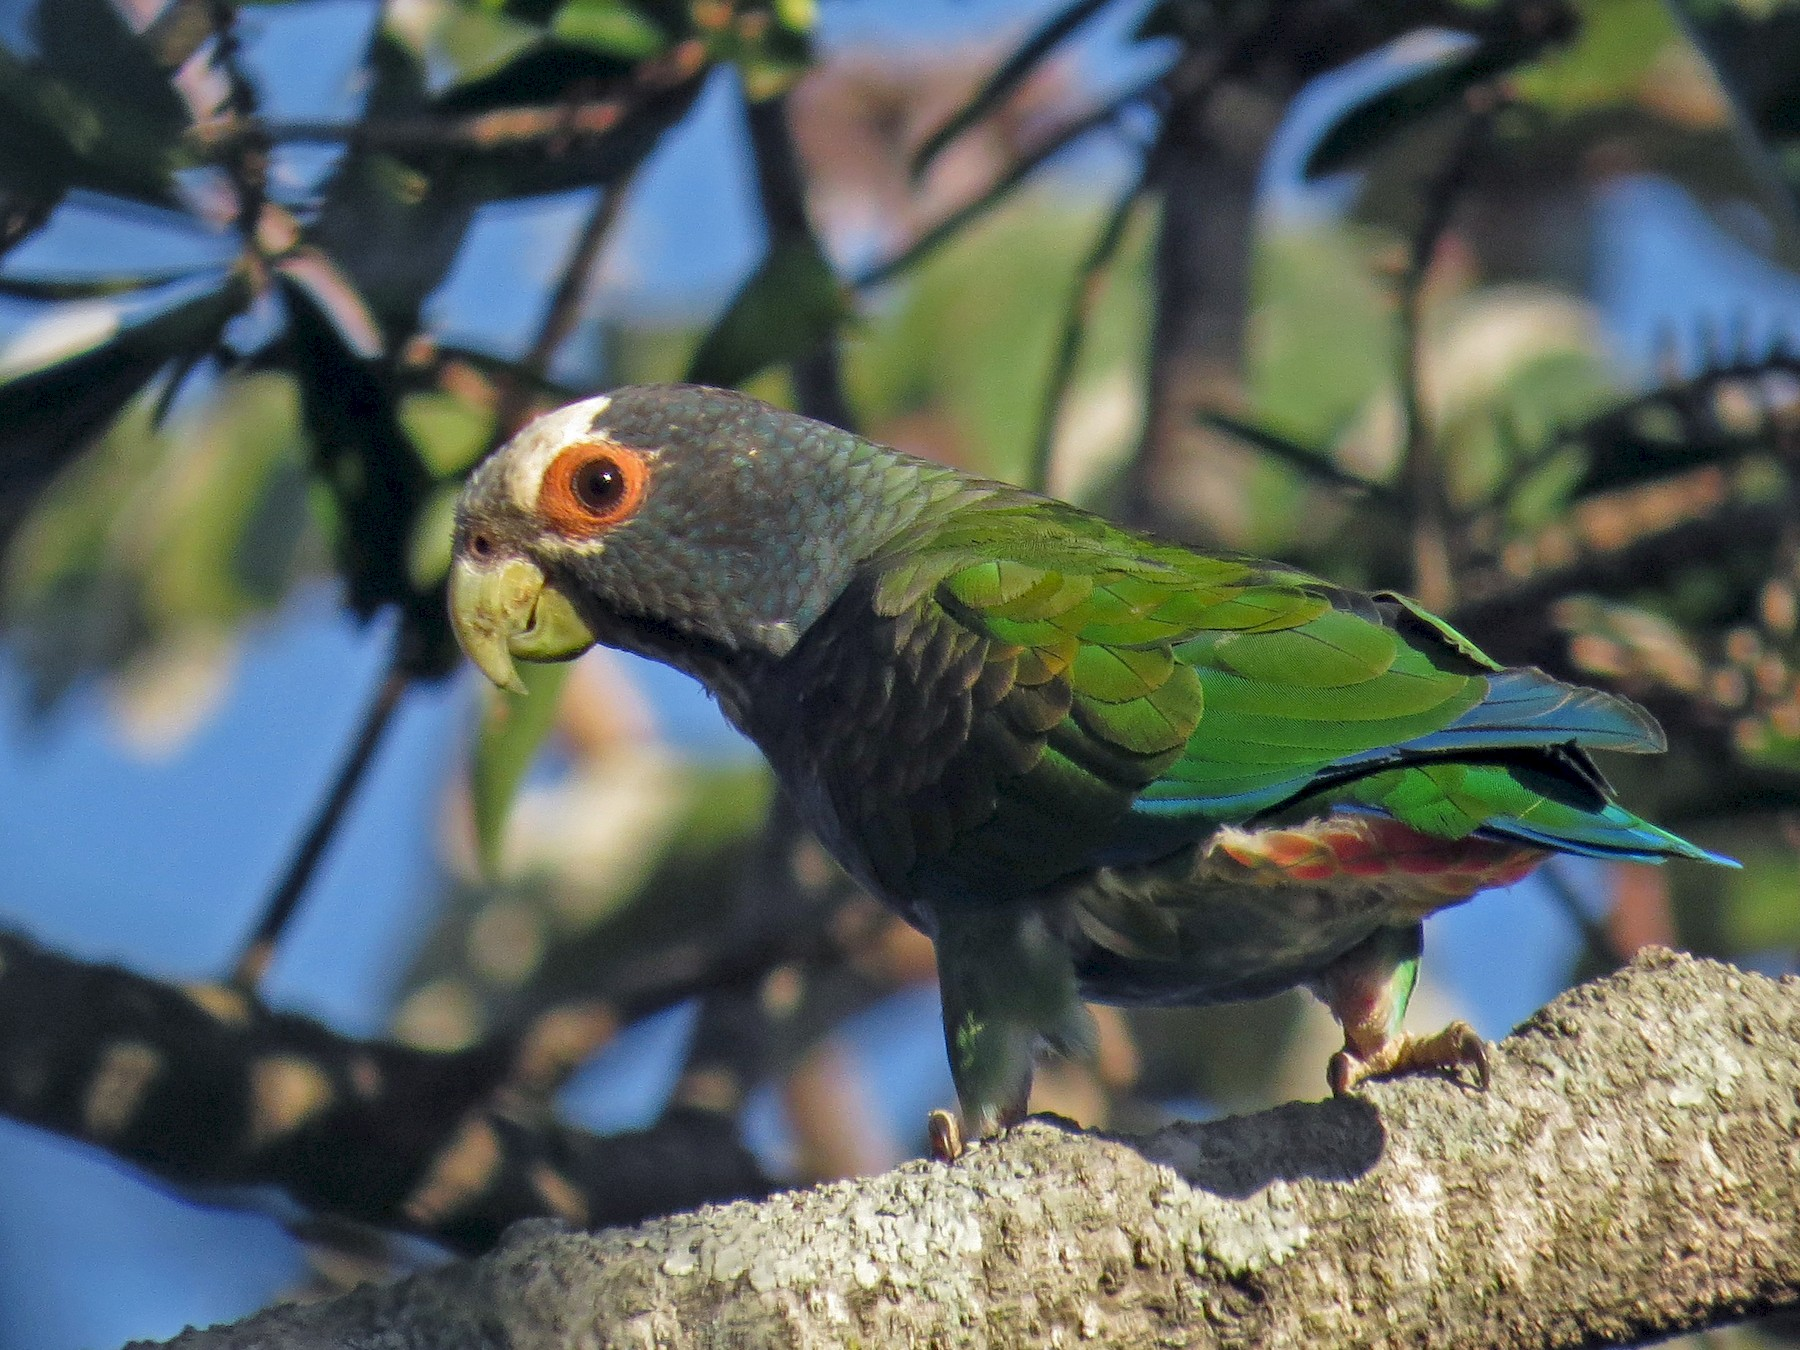 White-crowned Parrot - Seth Inman